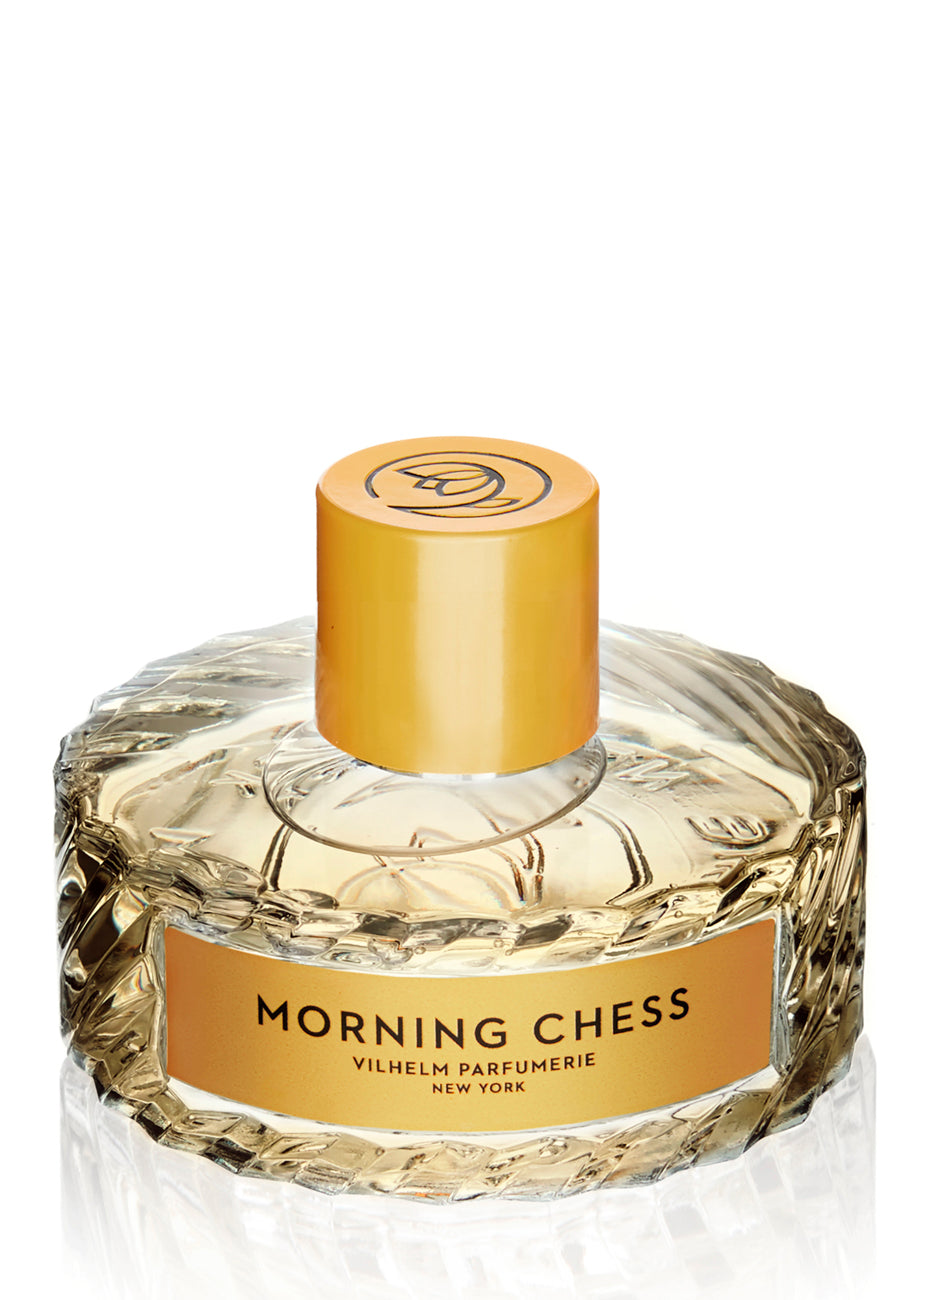 Morning Chess Eau De Parfum 100ml